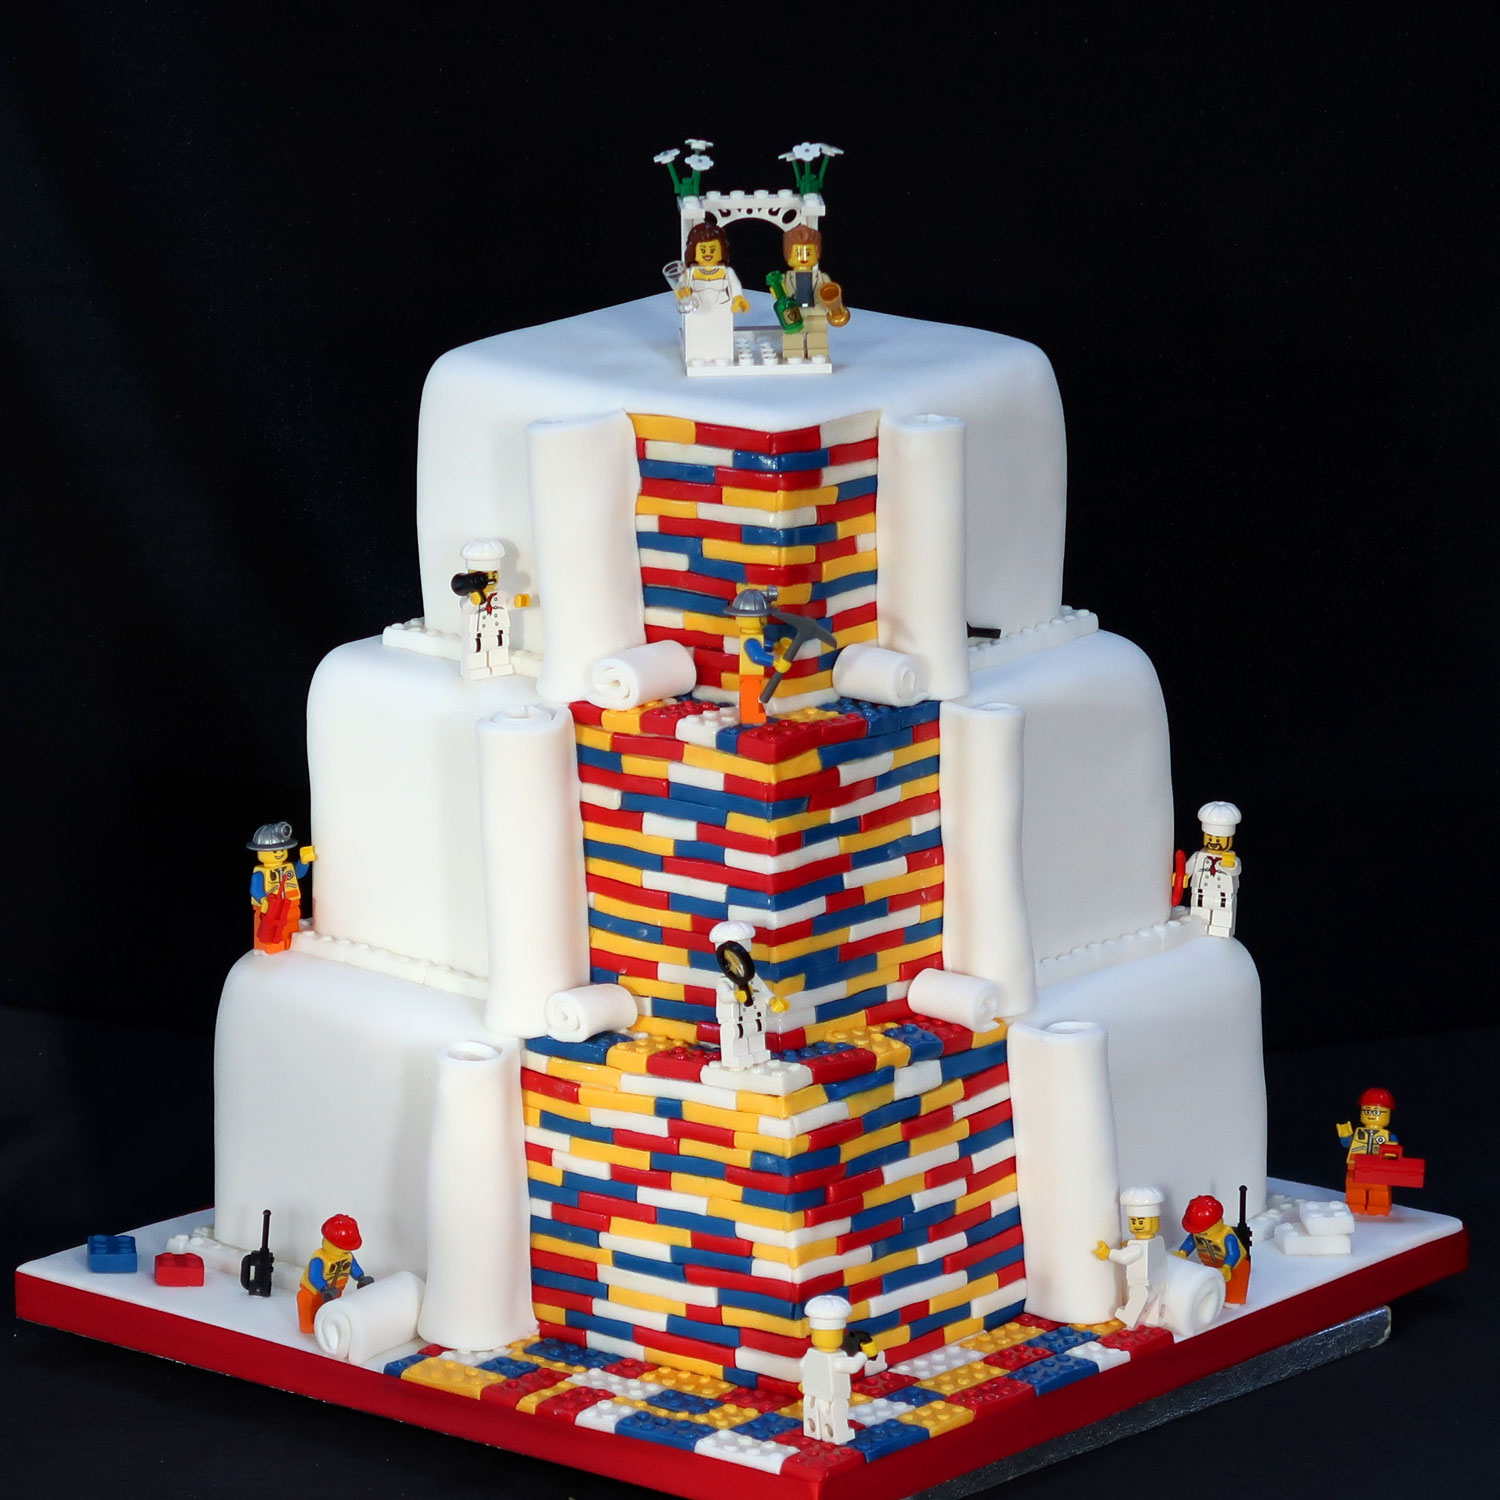 Extreme Wedding Cakes On Food Porn Friday From Behind